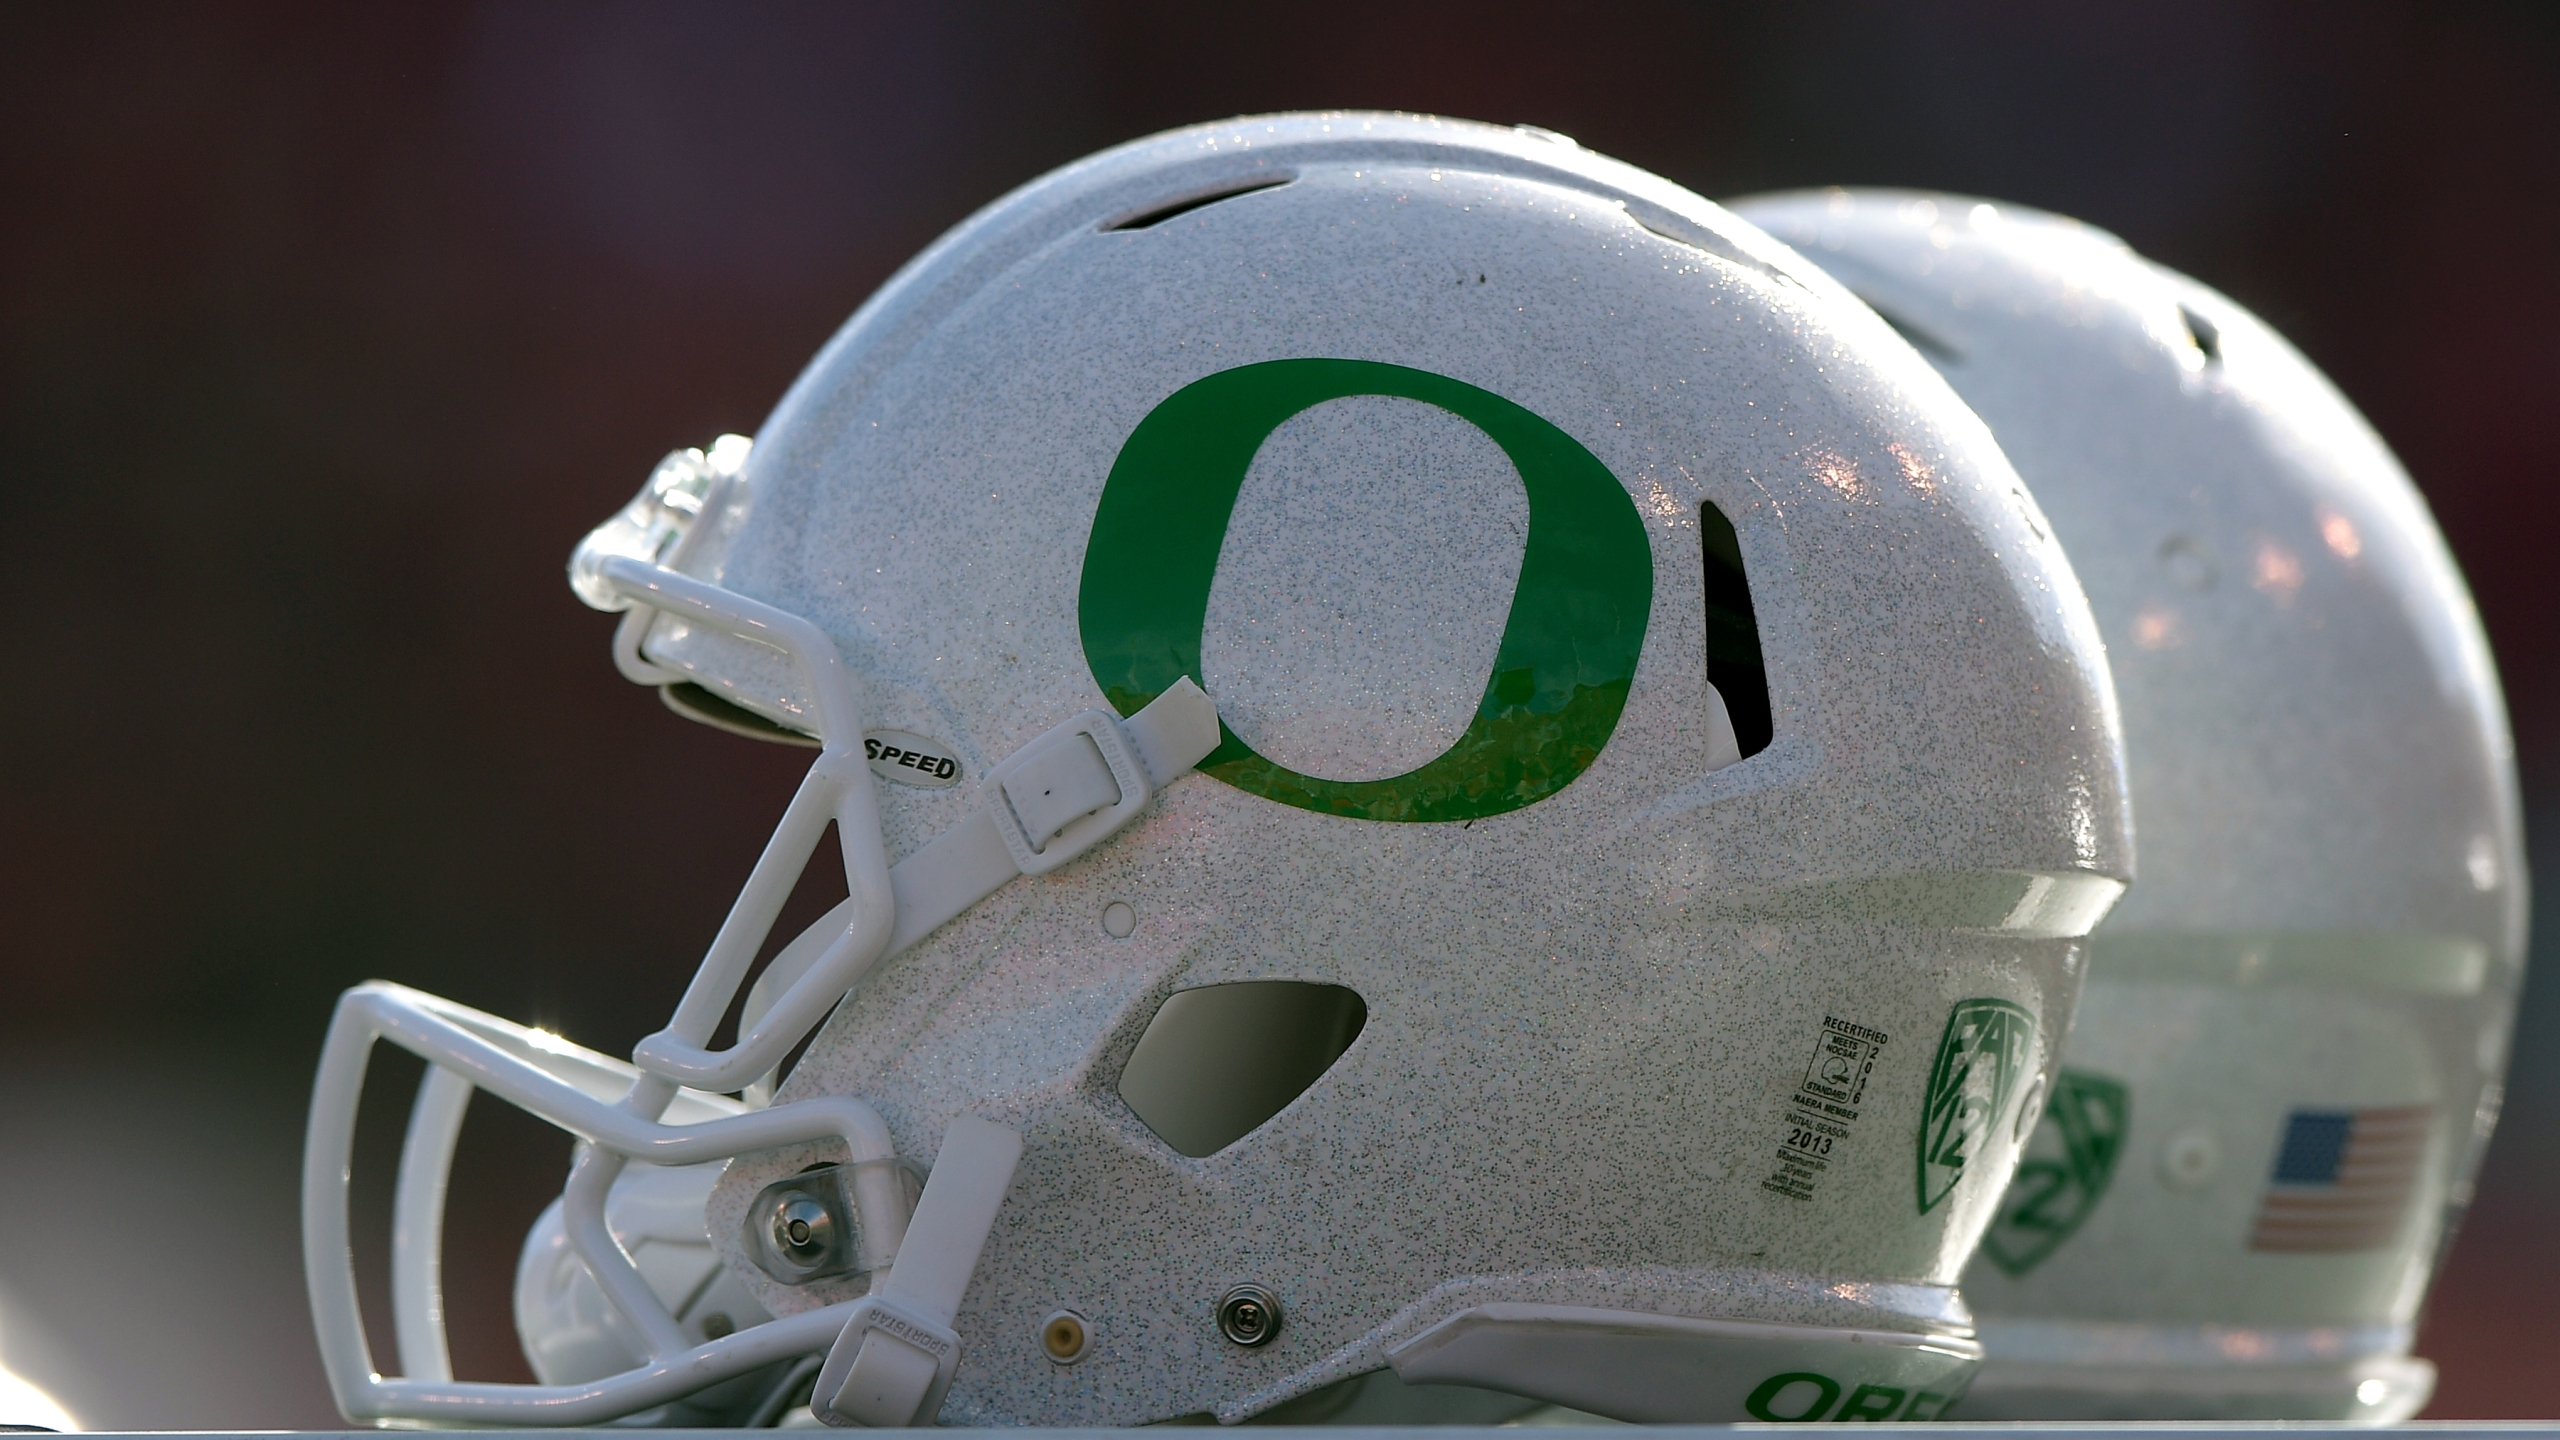 Isolated view of Oregon Ducks helmets on the sideline during the Ducks game against the Utah Utes at Rice-Eccles Stadium on November 19, 2016 in Salt Lake City, Utah. (Credit: Gene Sweeney Jr/Getty Images)